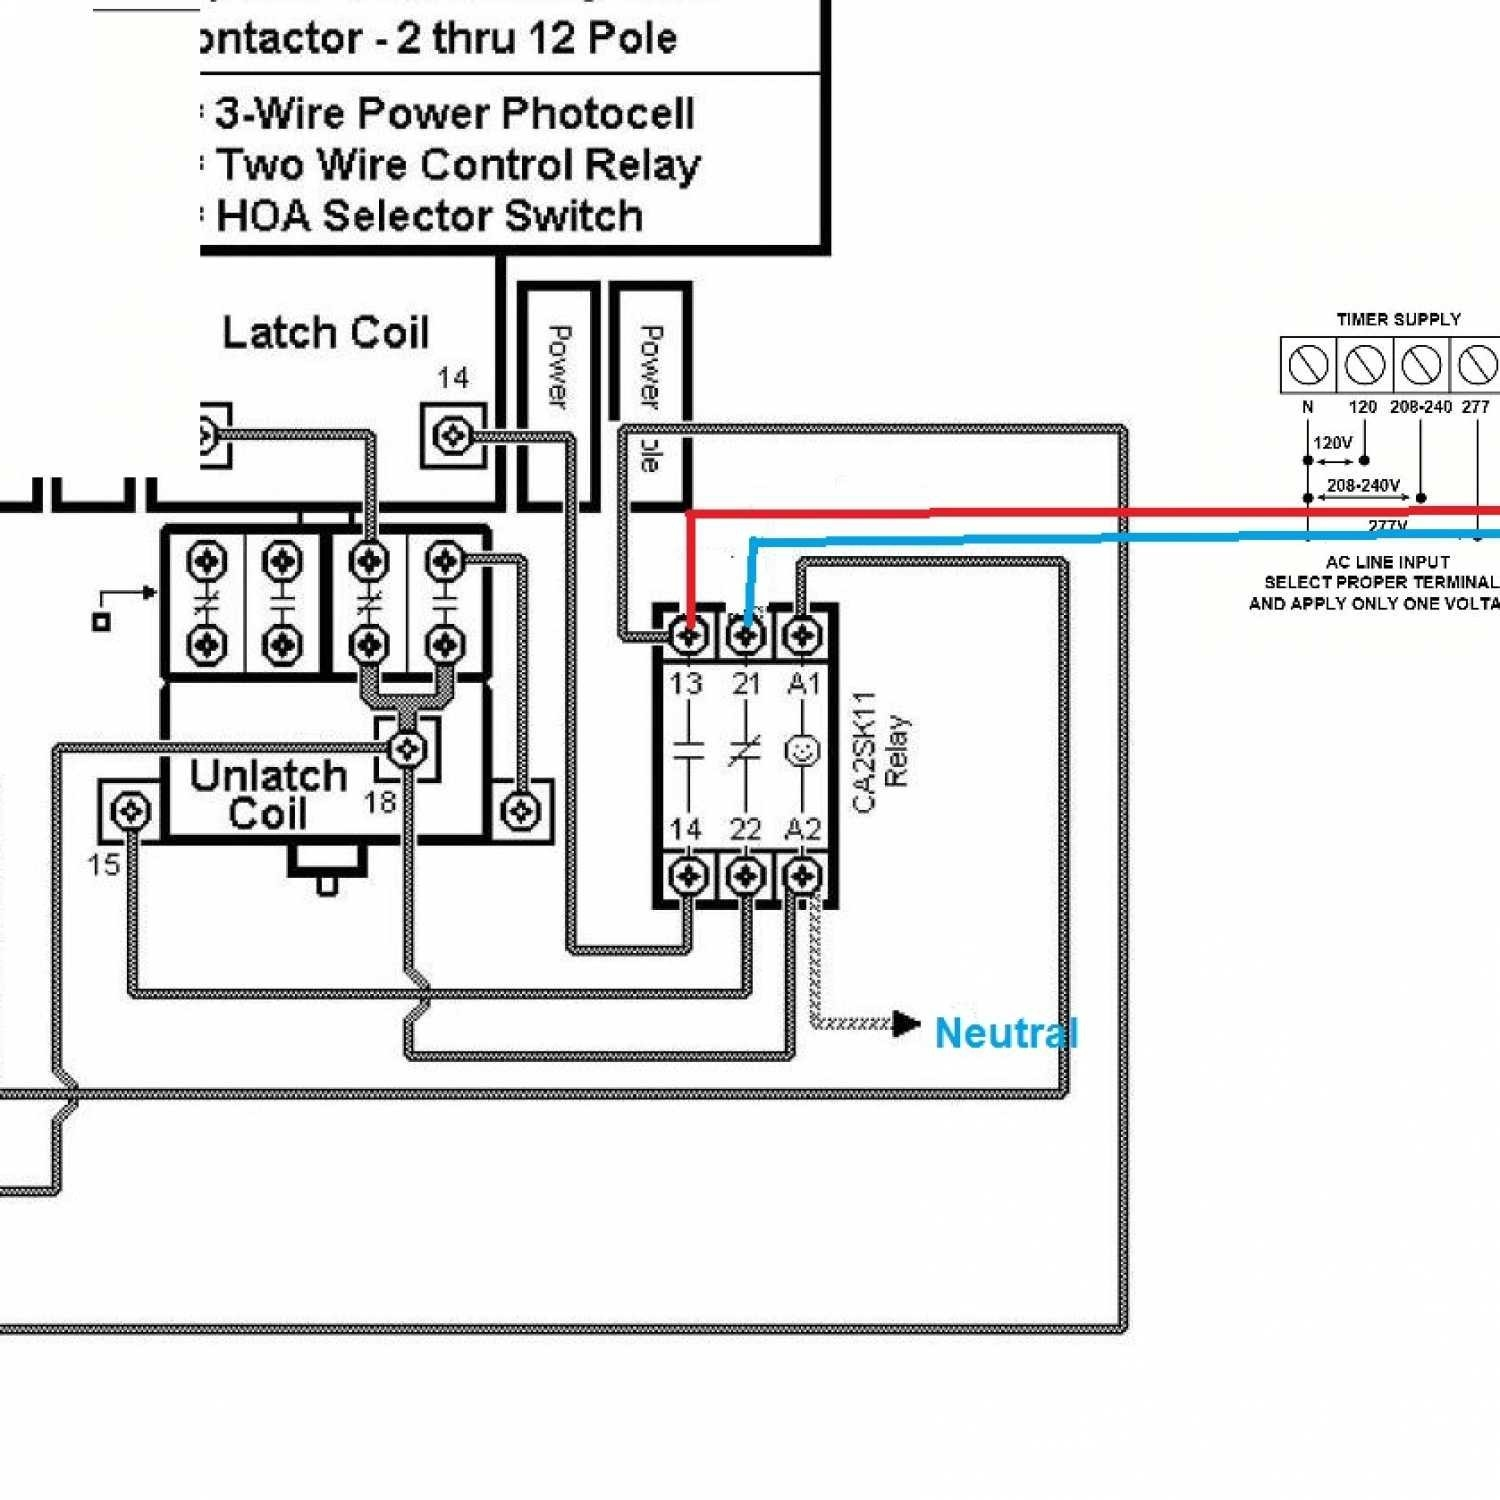 square d lighting contactor photocell wiring diagram wiringsquare d lighting contactor wiring diagram wiring photocell and time clock square d 8903 lighting contactor